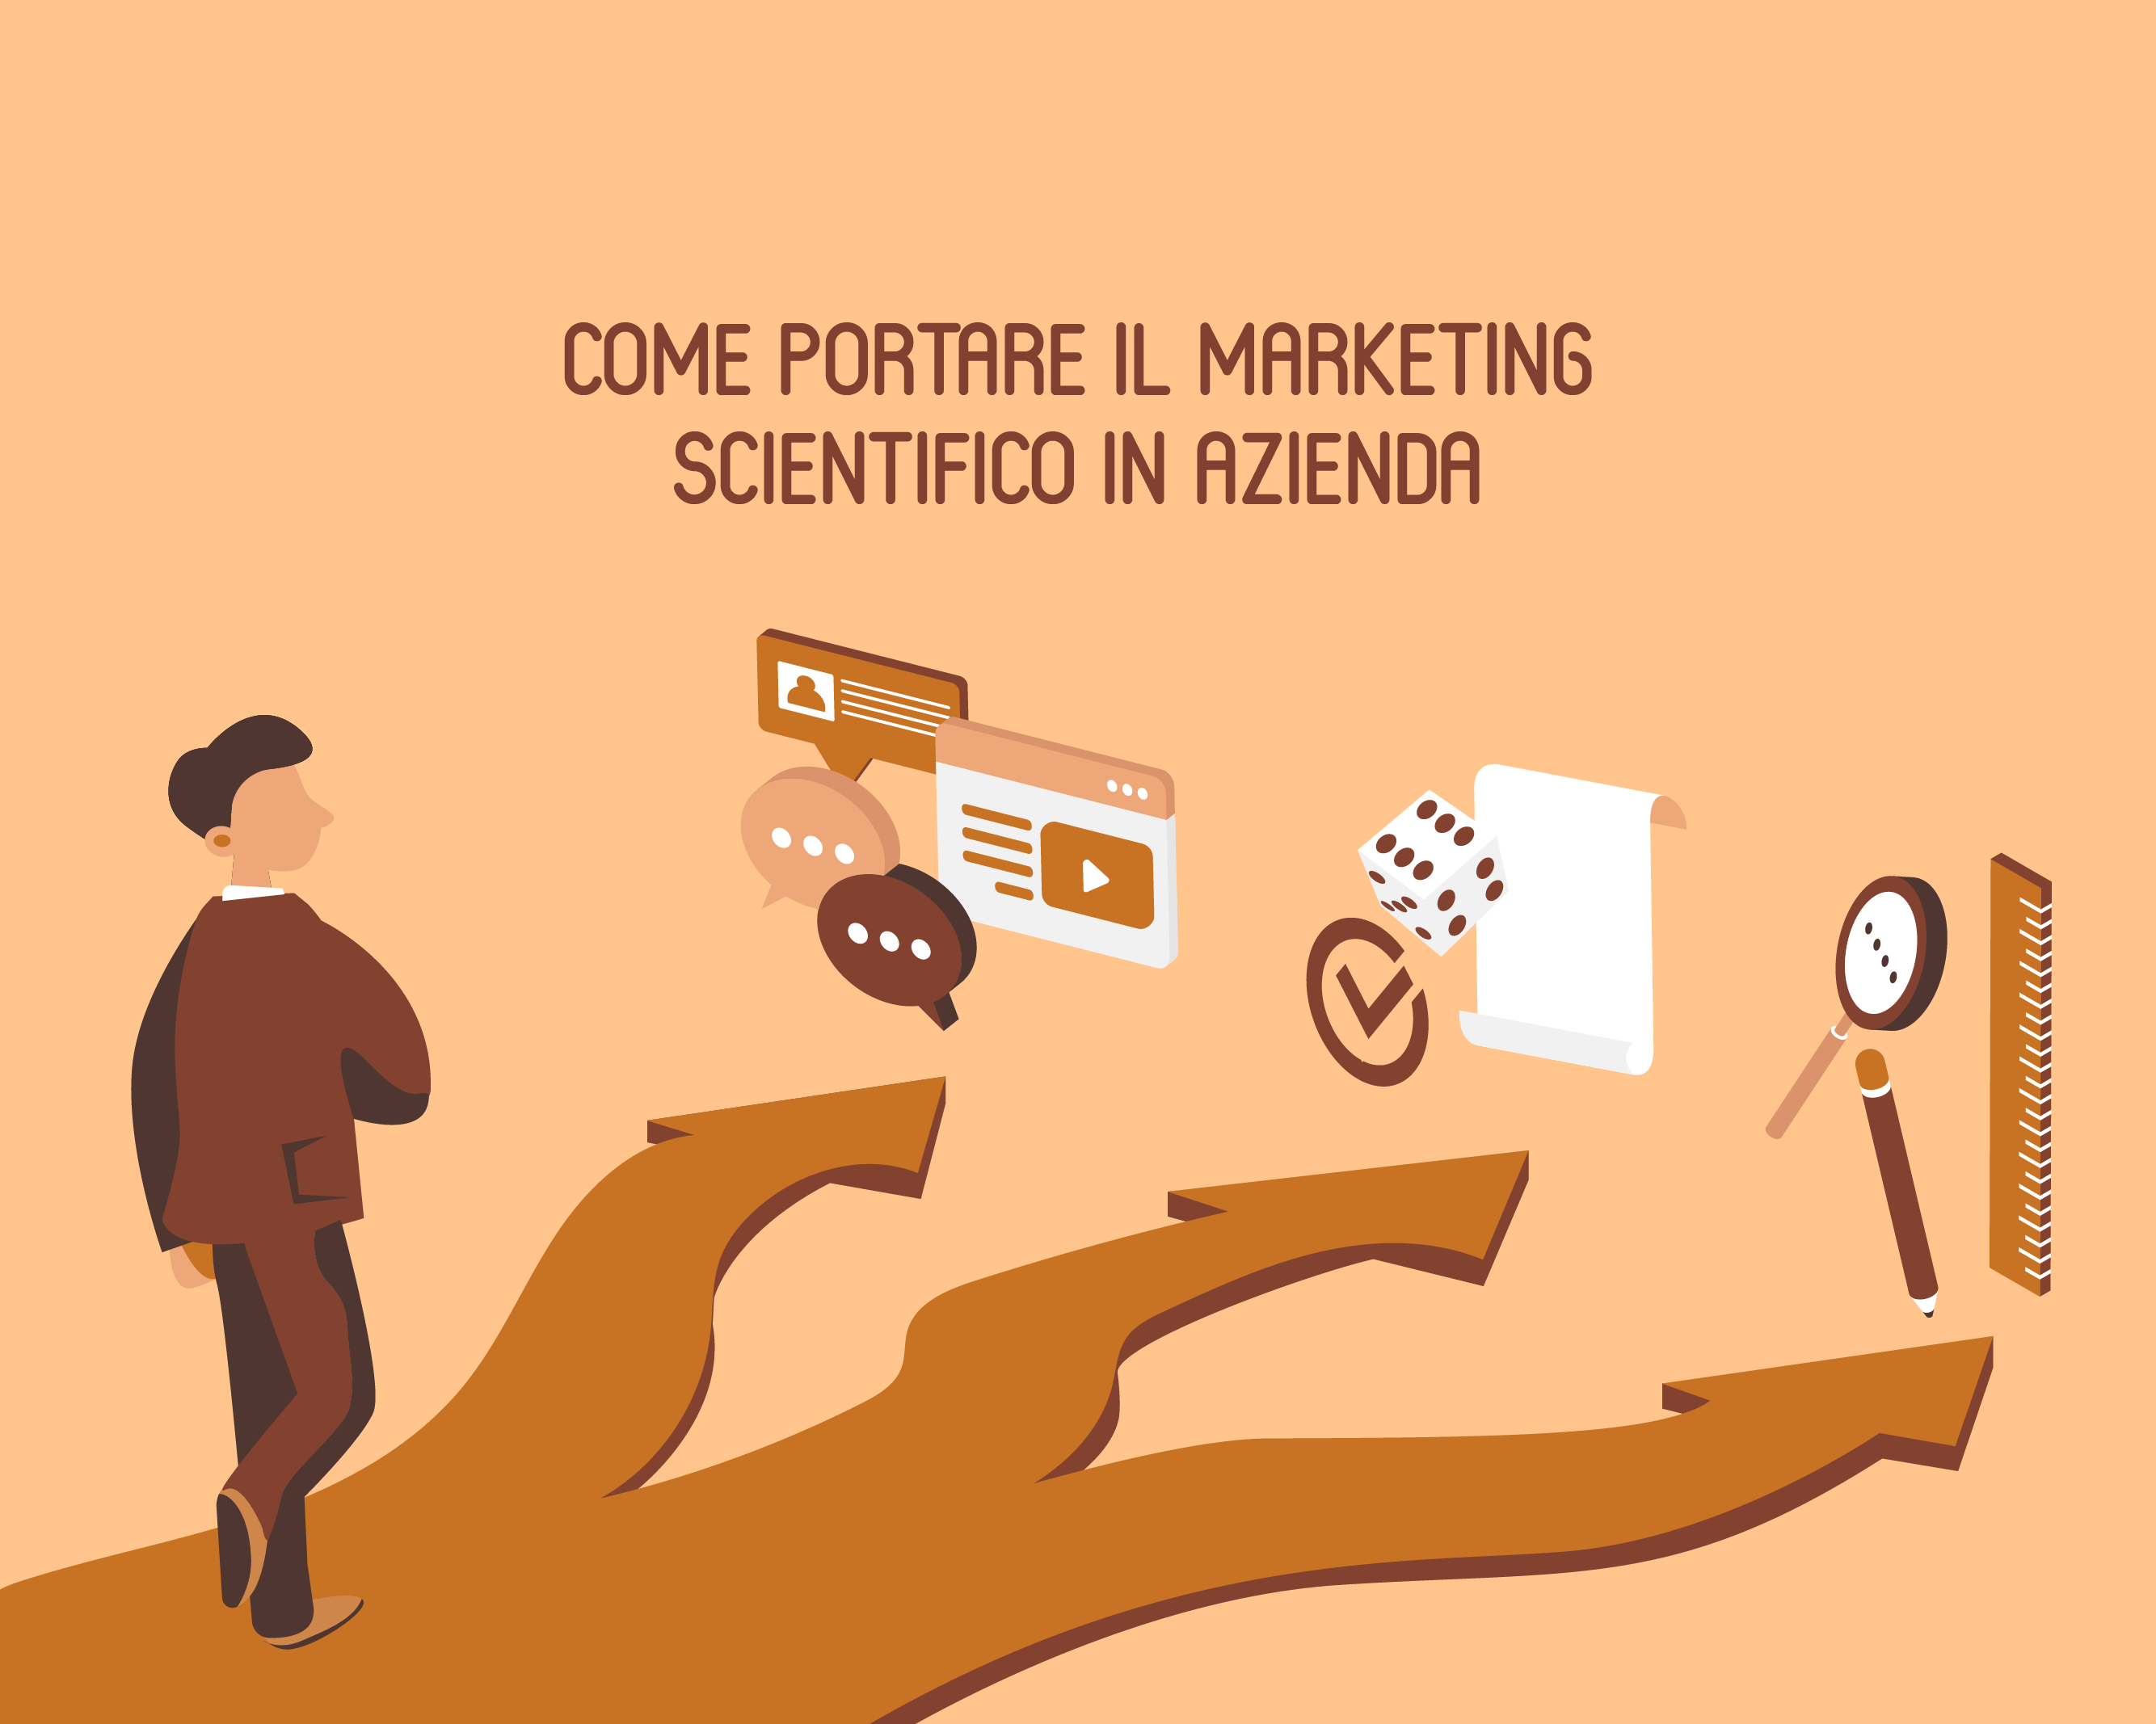 Come portare il marketing scientifico in azienda